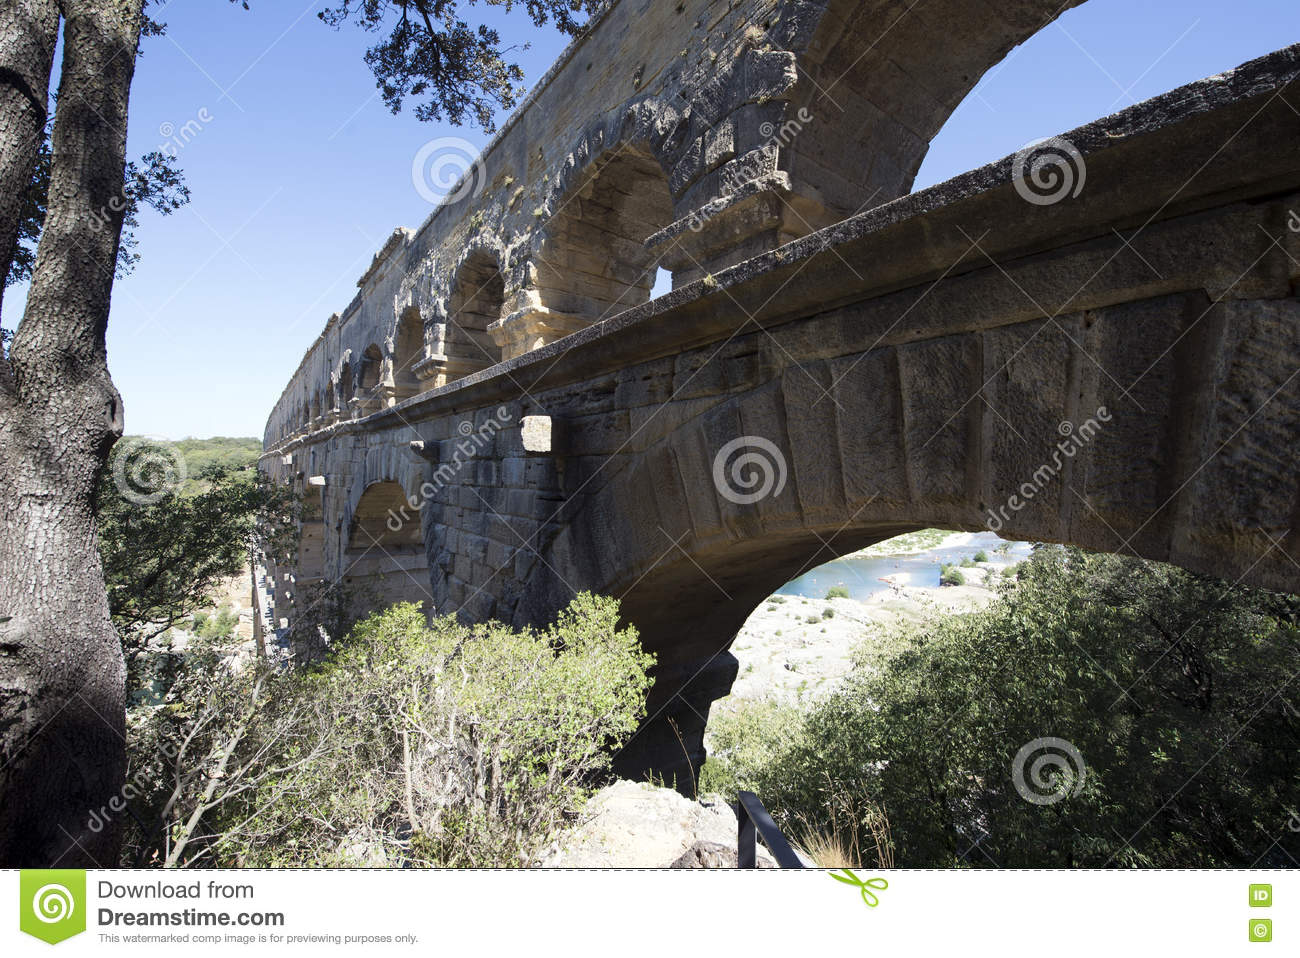 Pont du gard architecture detail france stock photo for Pont du gard architecte